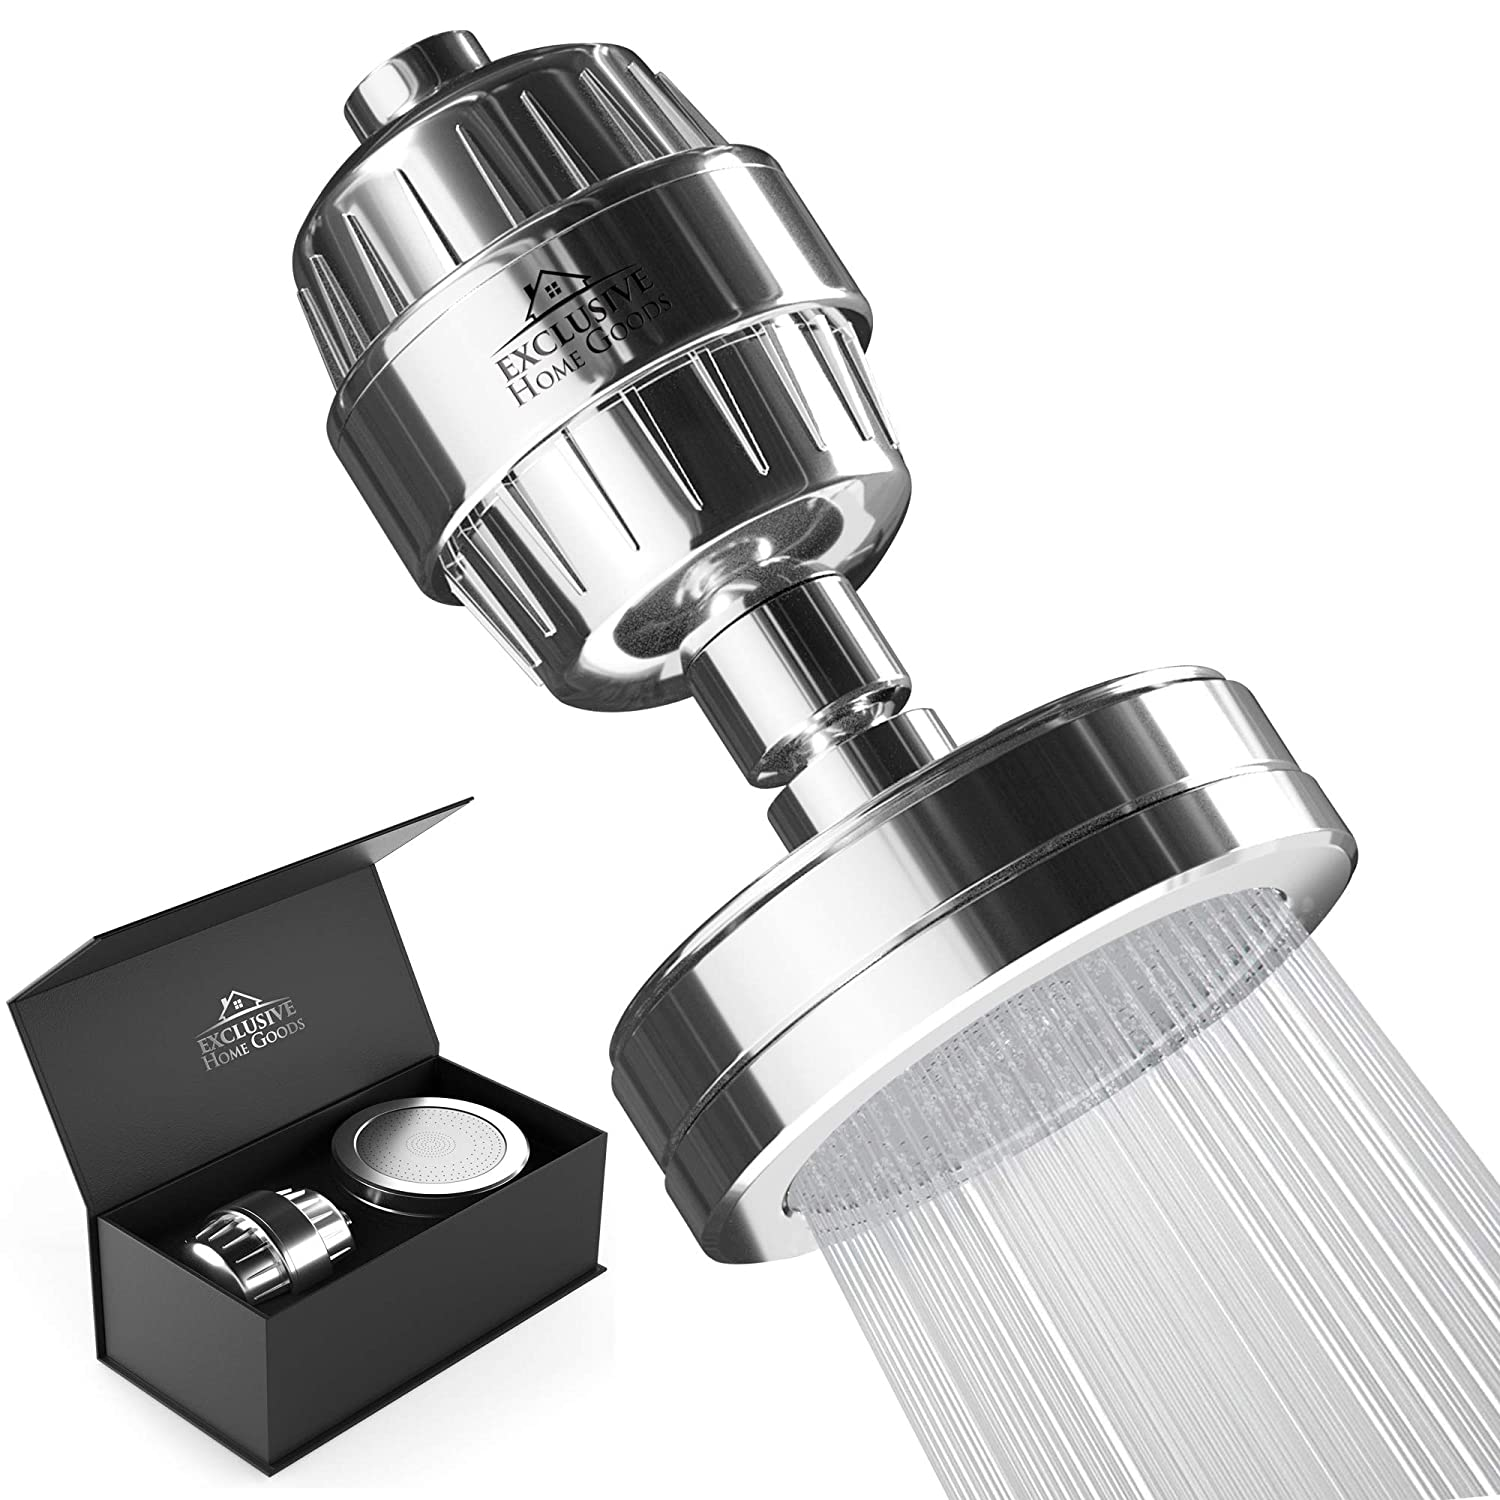 1. Exclusive Home Goods Luxury Shower Filter